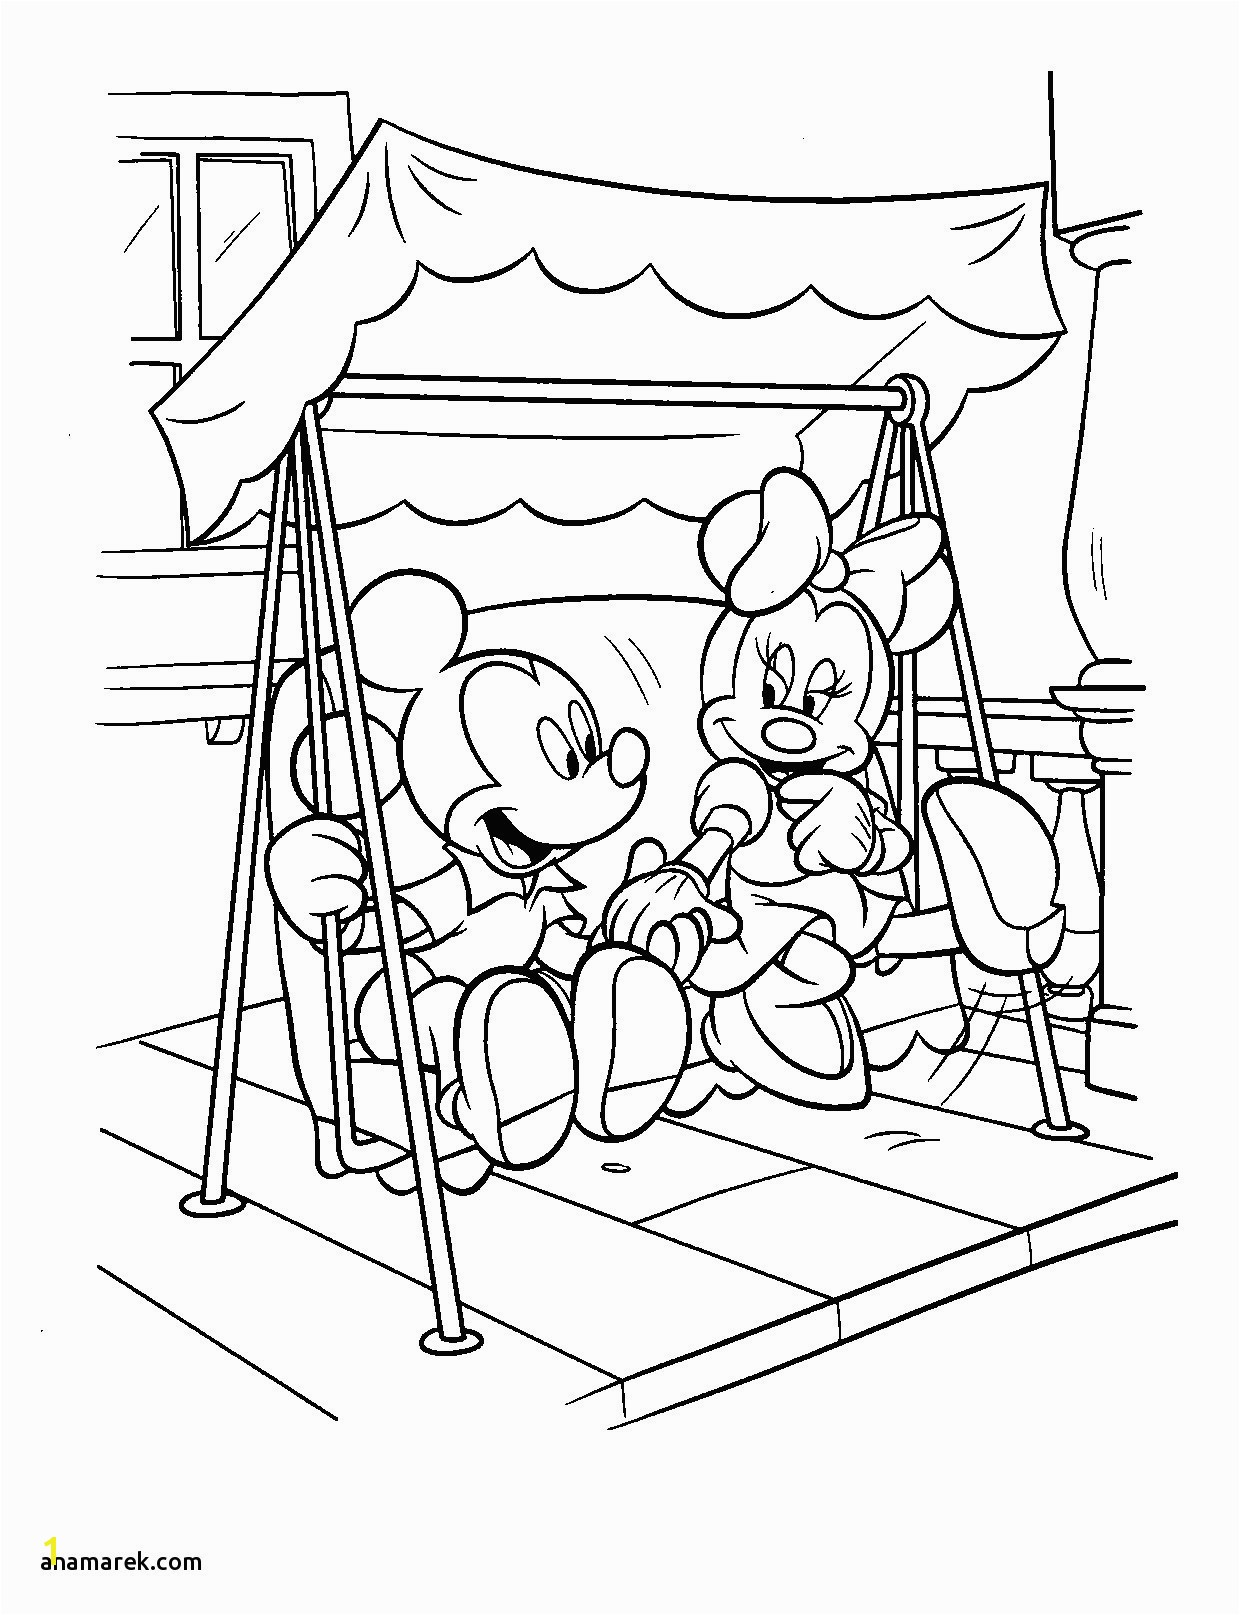 Coloring Pages Minnie Mouse Minnie Mouse And Mickey Coloring Pages With Color Elegant New Pin Od